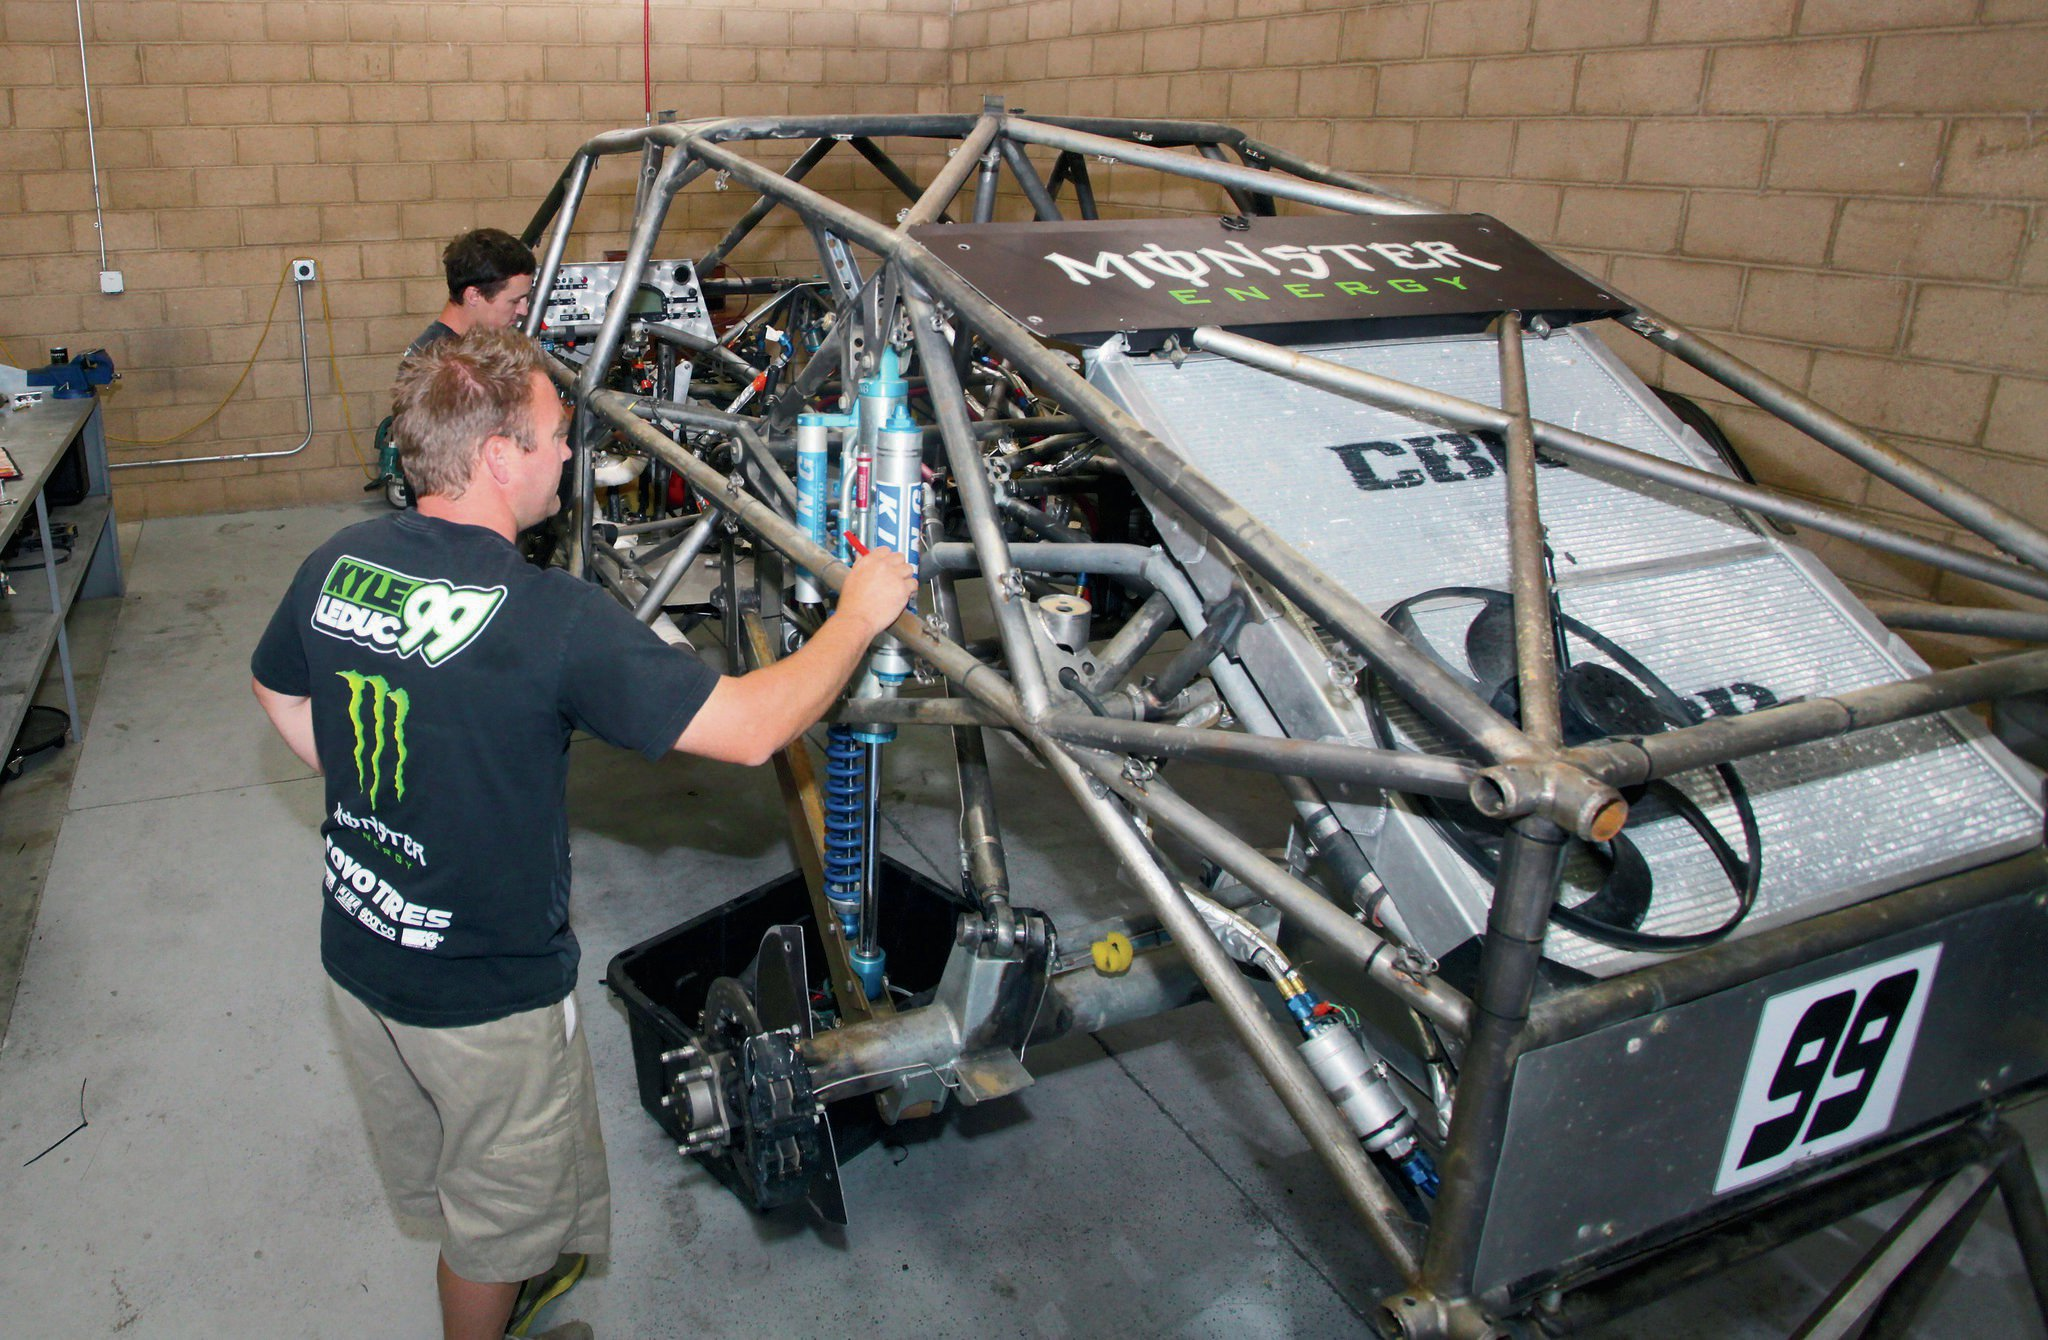 Kyle Leduc looks over the Monster Energy Pro-4 at his race shop.